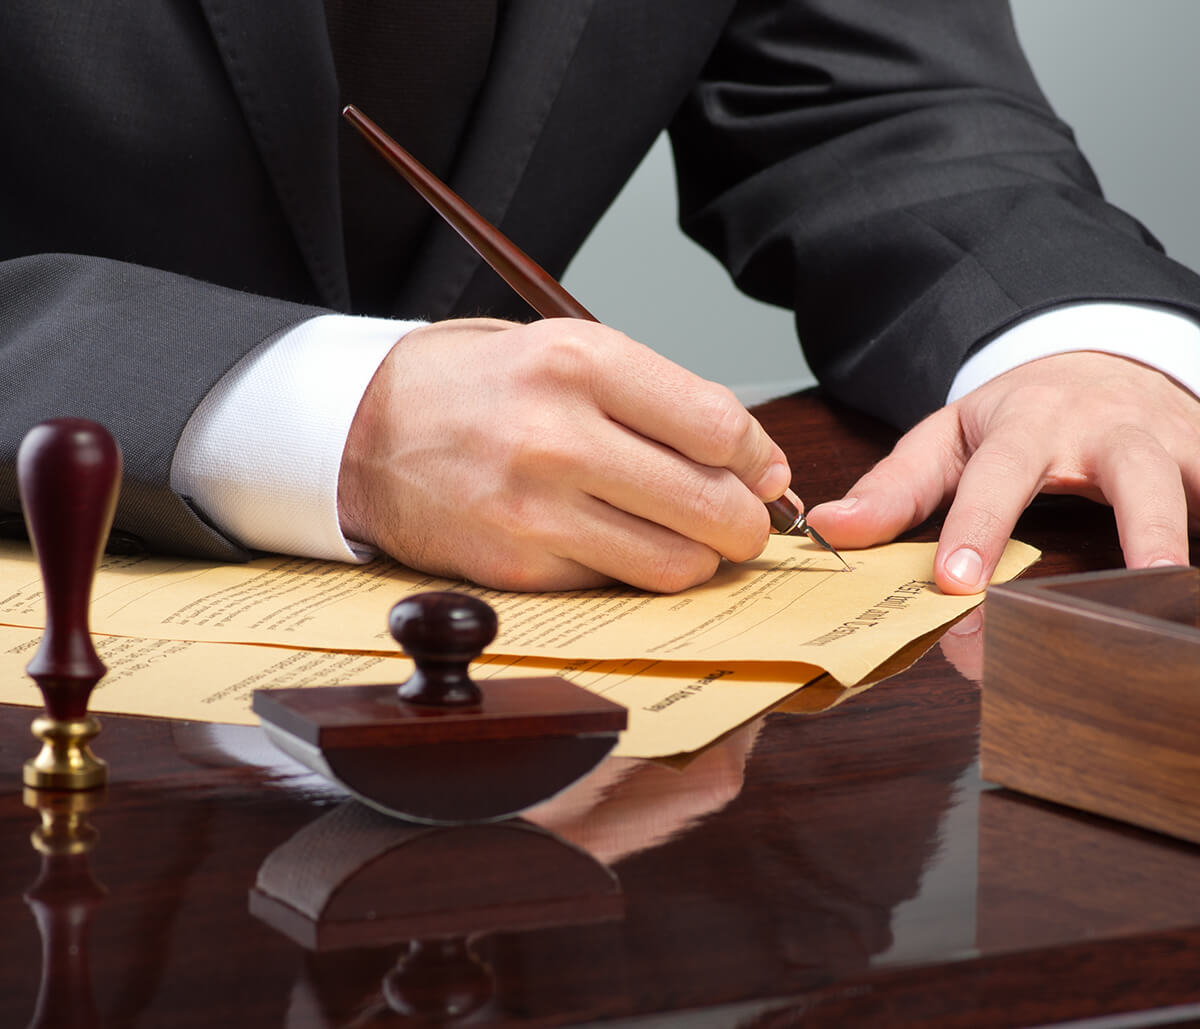 In Mississauga Area Lawyer is Fluent in the Language of Legal Contract Drafting, Review